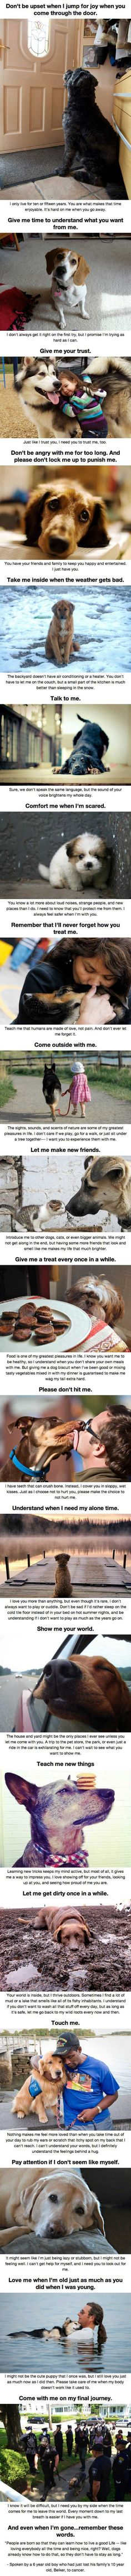 20 important facts for dog lovers